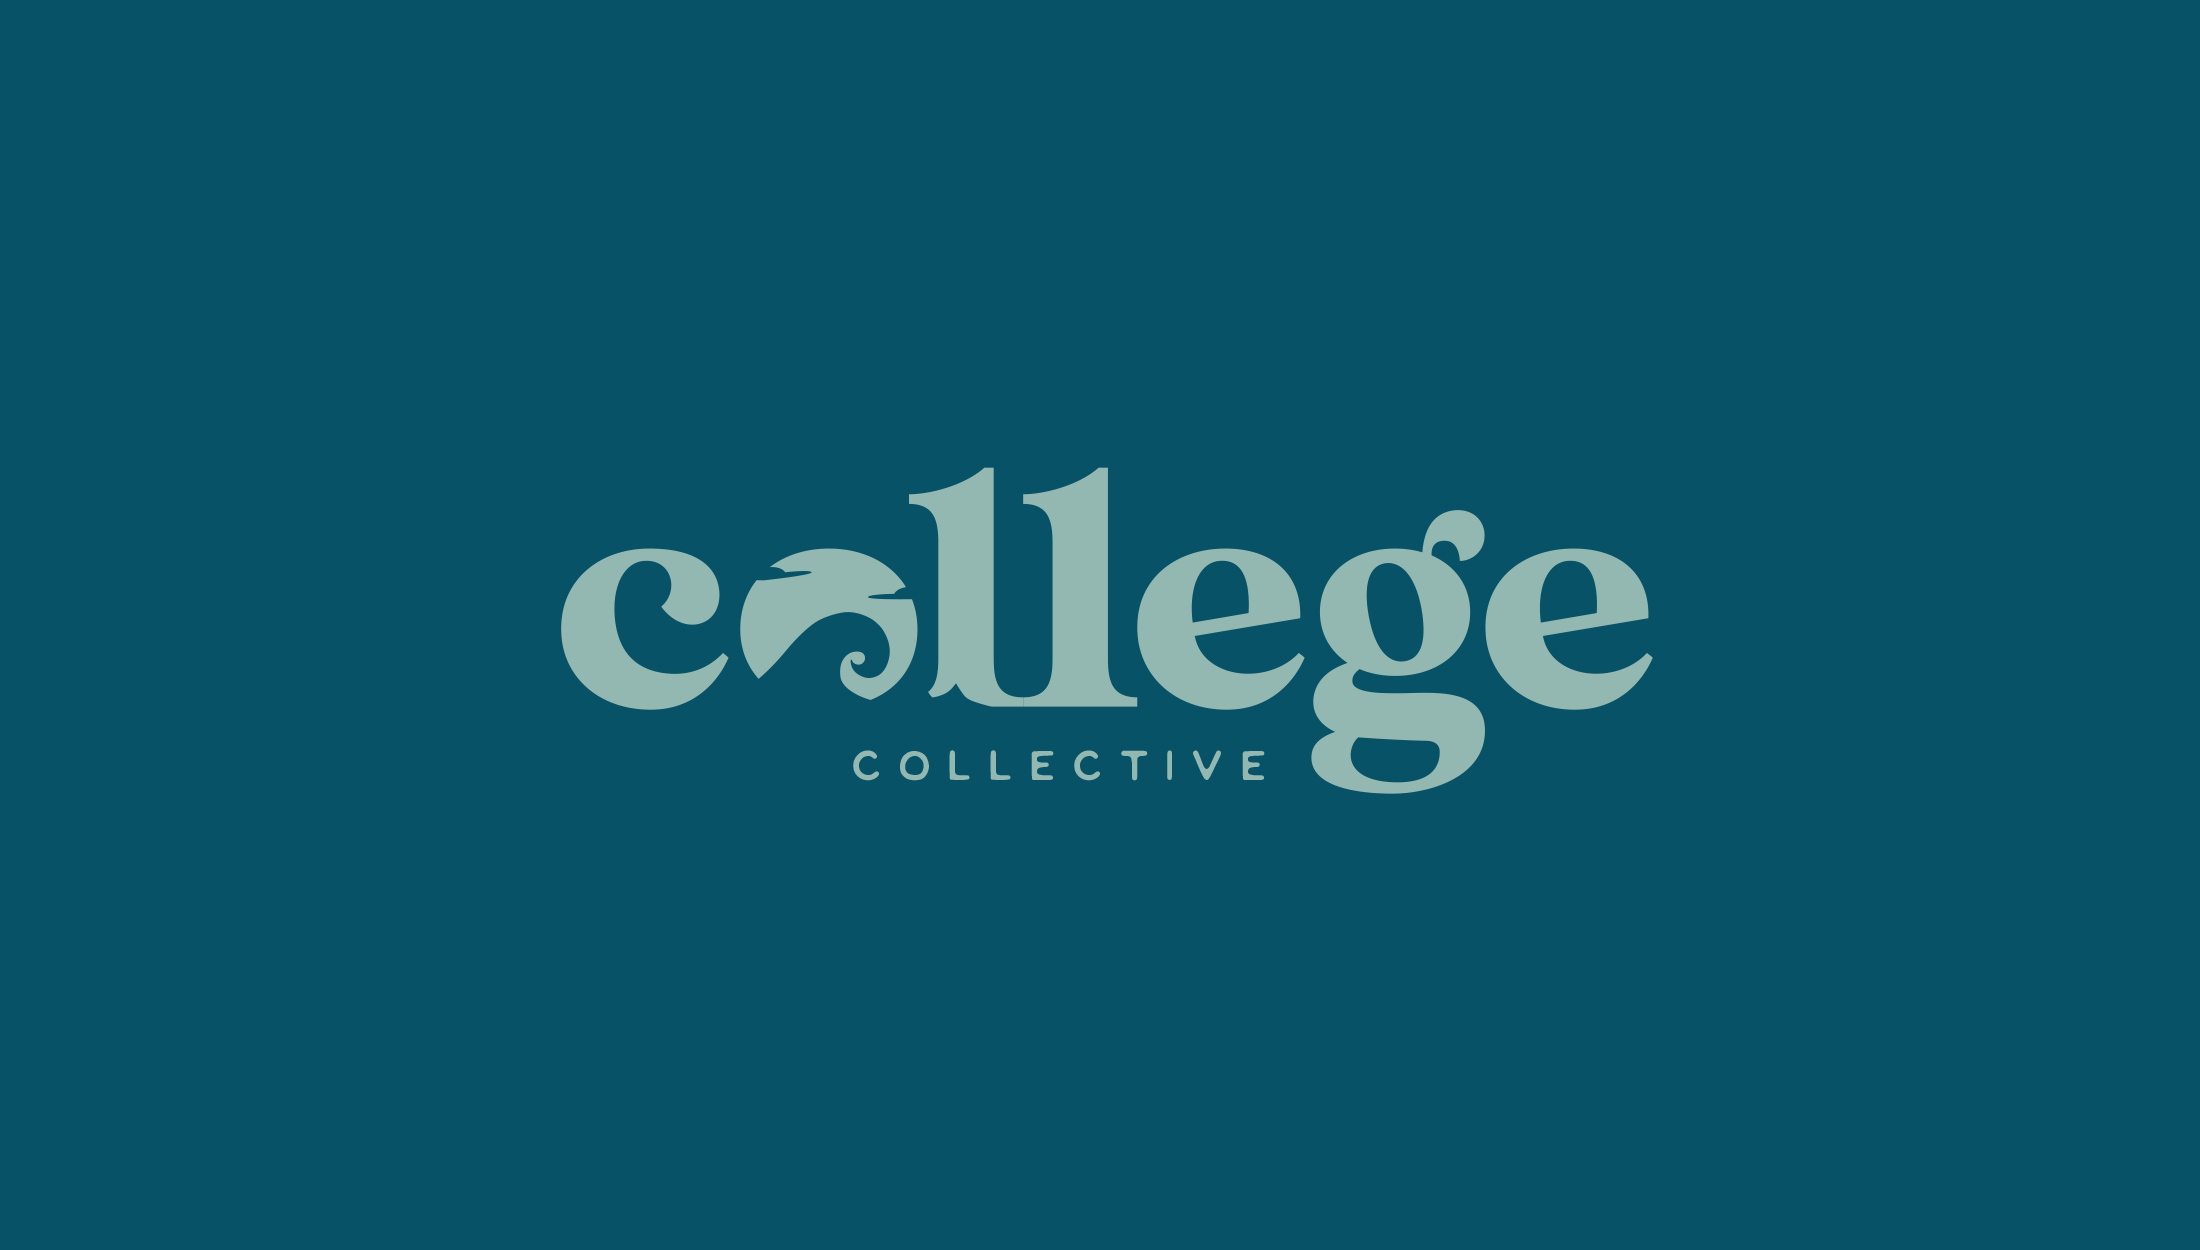 Logo design for College Collective, The College Collective membership gives students a step-by-step plan for applying to college with the support of a community full of other educational professionals and peers - designed by Wiltshire-based graphic designer, Kaye Huett